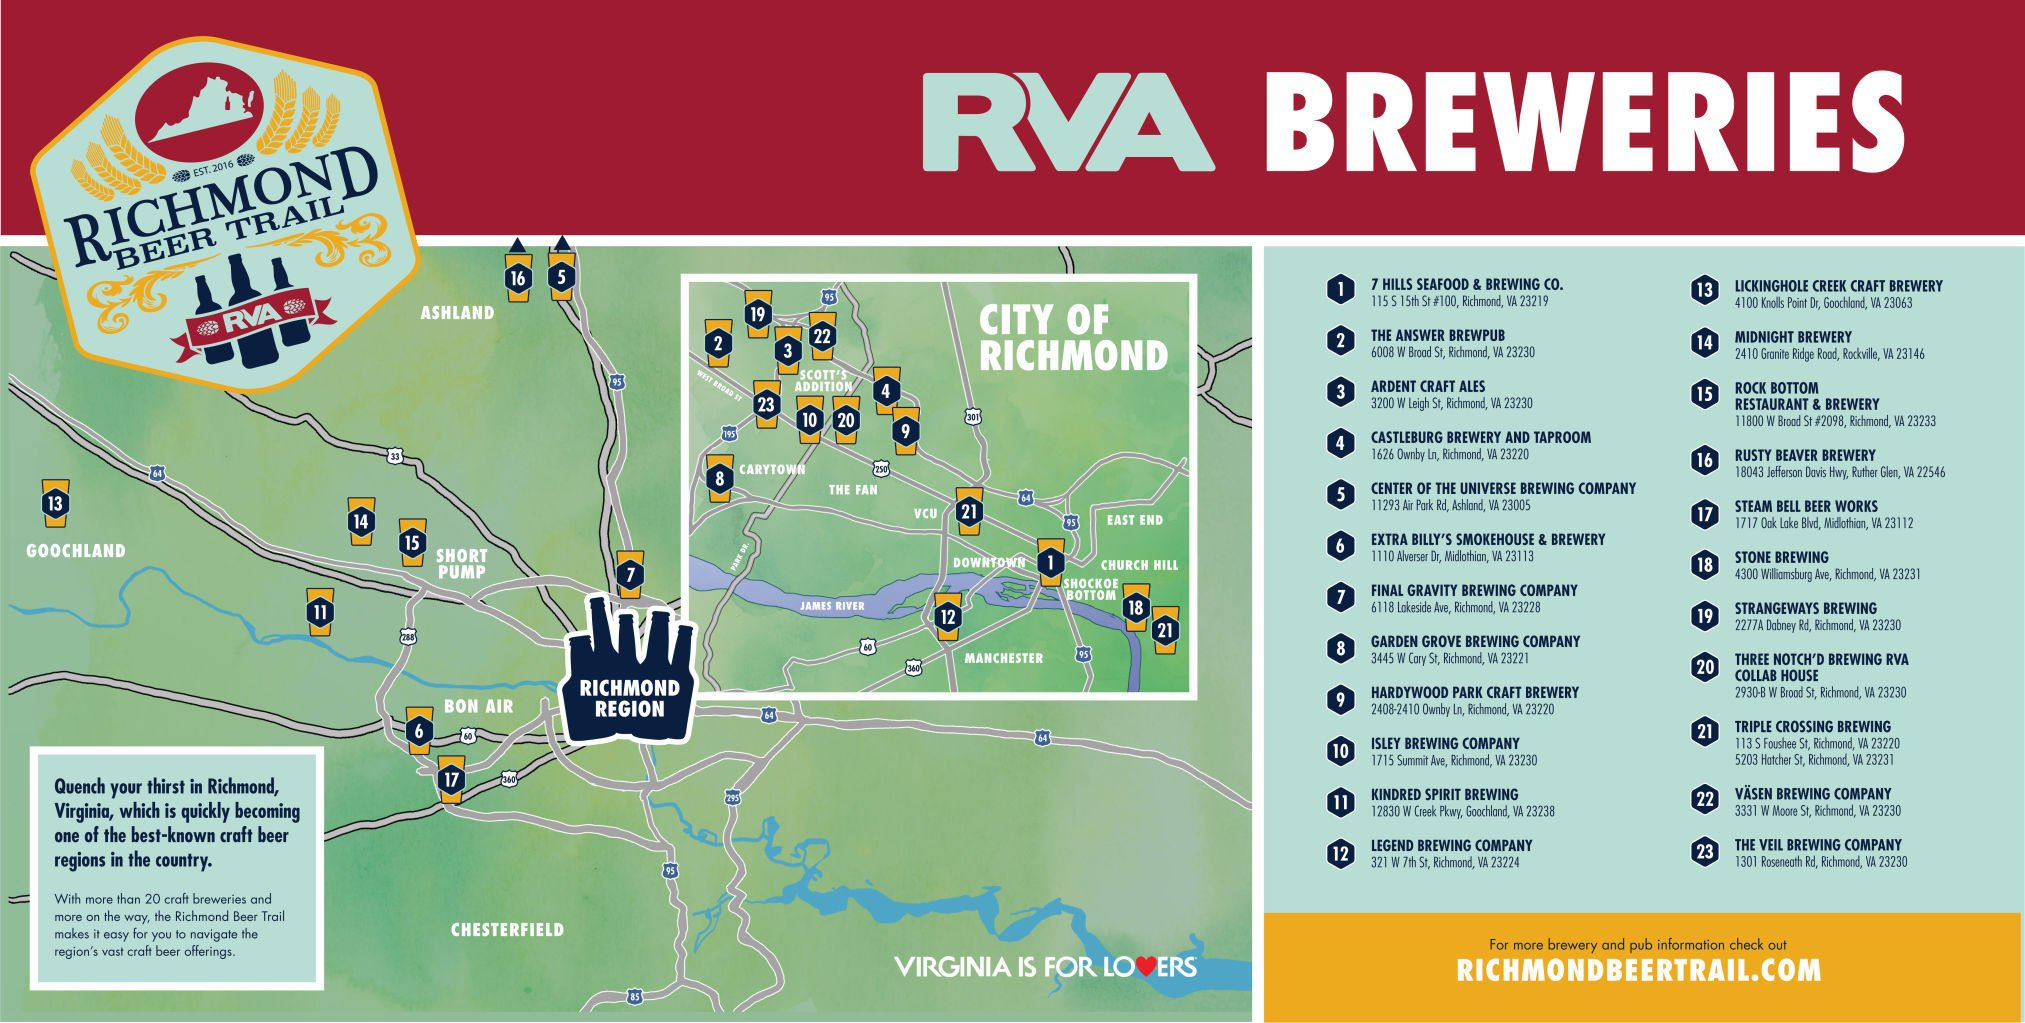 Richmond Beer Trail features 23 area breweries Entertainment